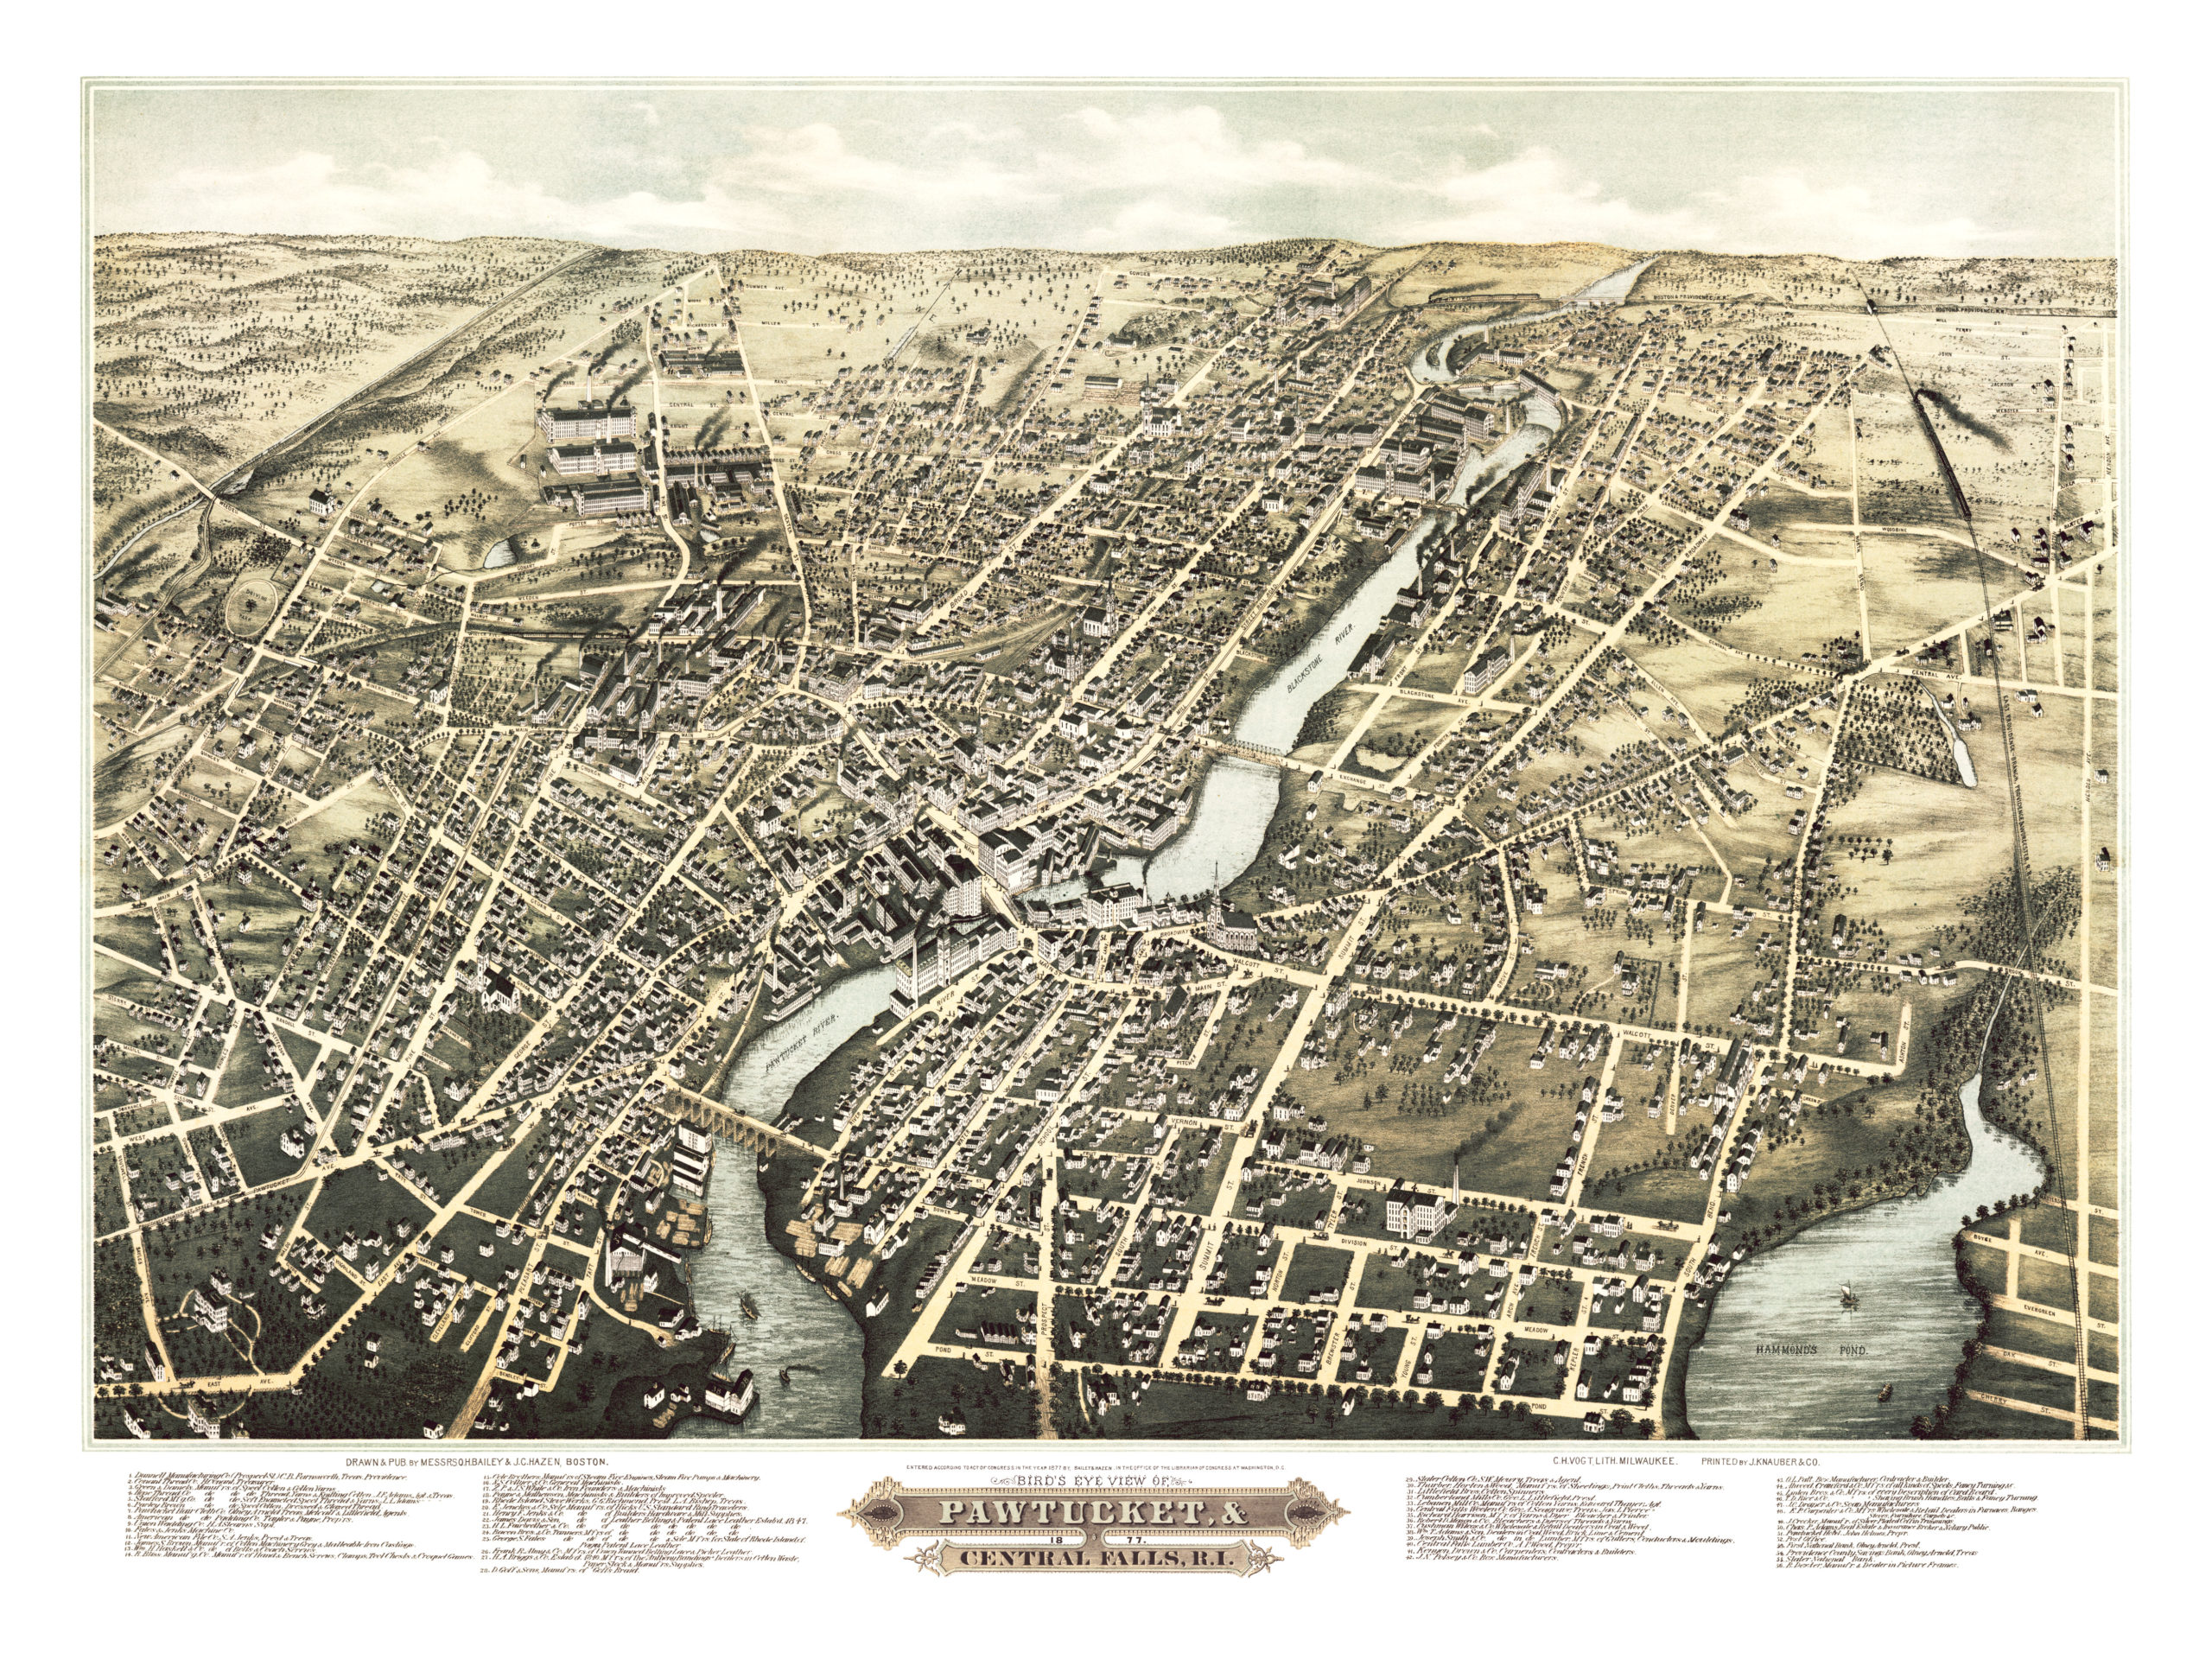 Birds eye view of Pawtucket and Central Falls RI in 1877 KNOWOL